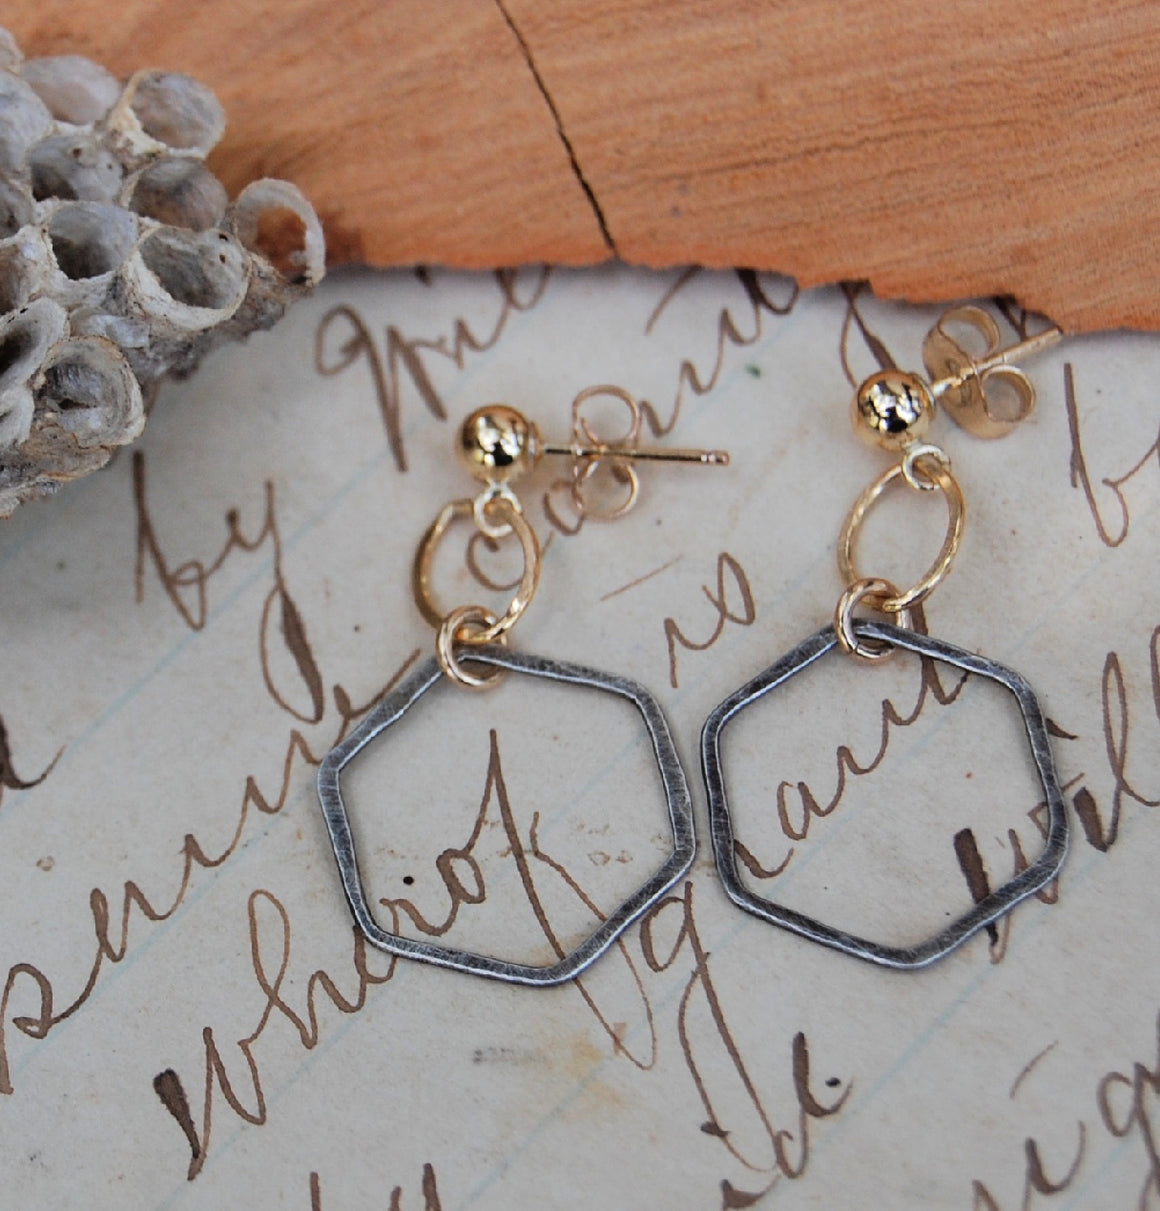 Hexagons with gold-filled accent